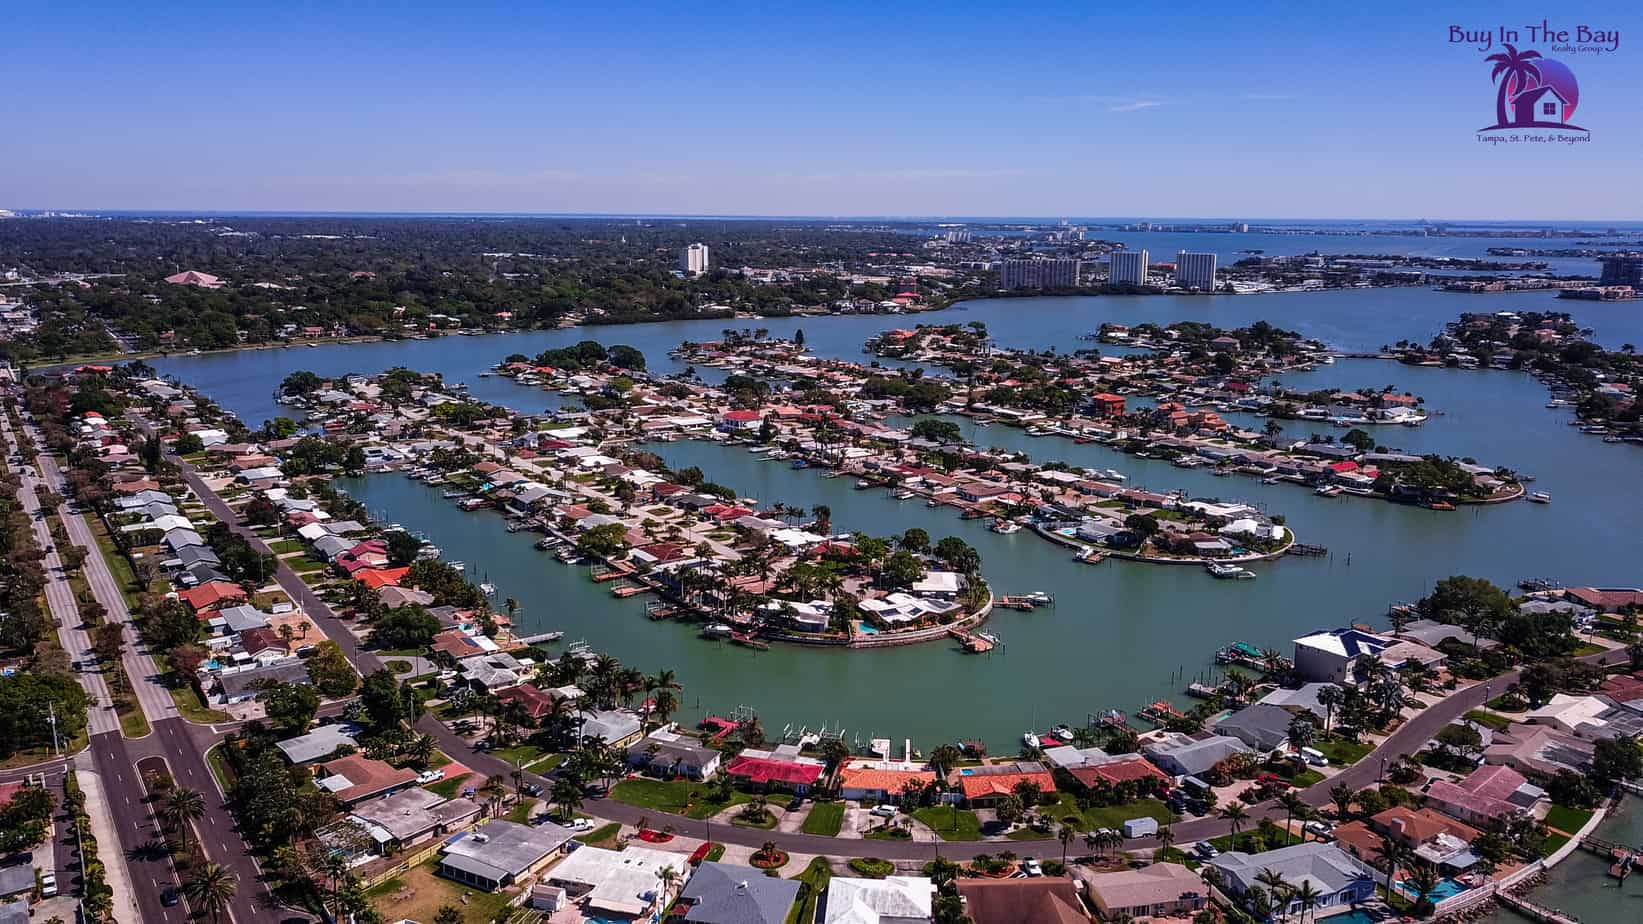 Ariel view of treasure island fl 33706 with many different colored houses on an inlet surrounded by water